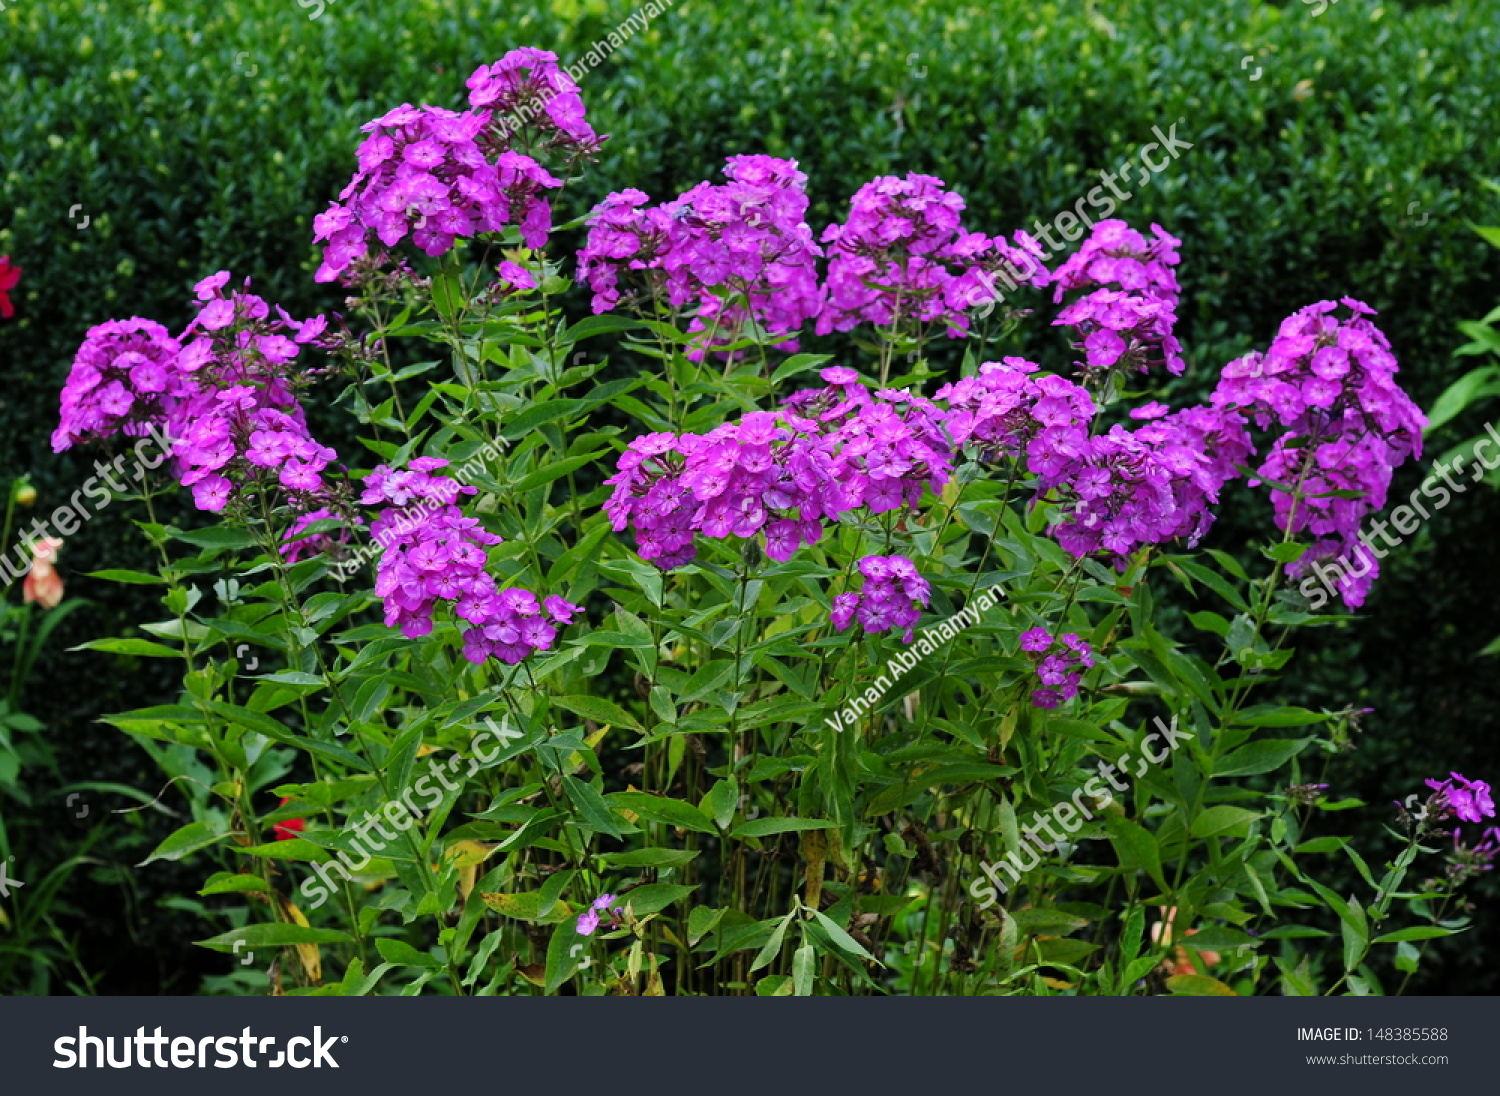 Phlox Paniculata Garden Phlox Bloom Stock Photo 148385588